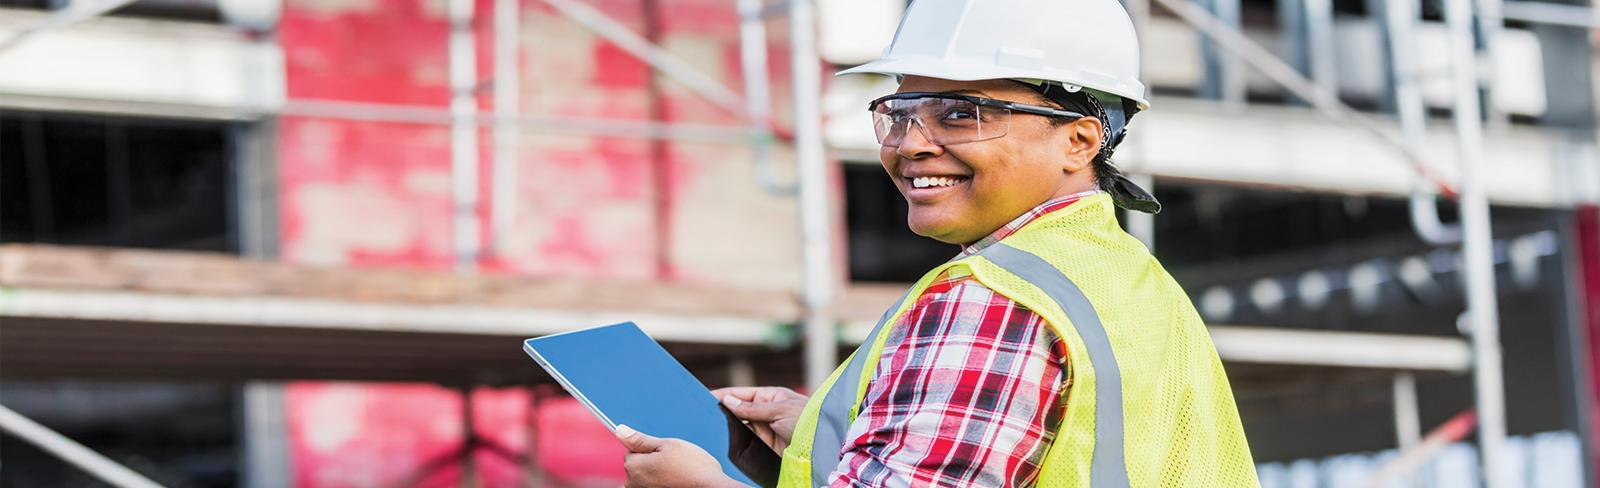 Stepping Up Women's STEM Careers in Infrastructure Sectors